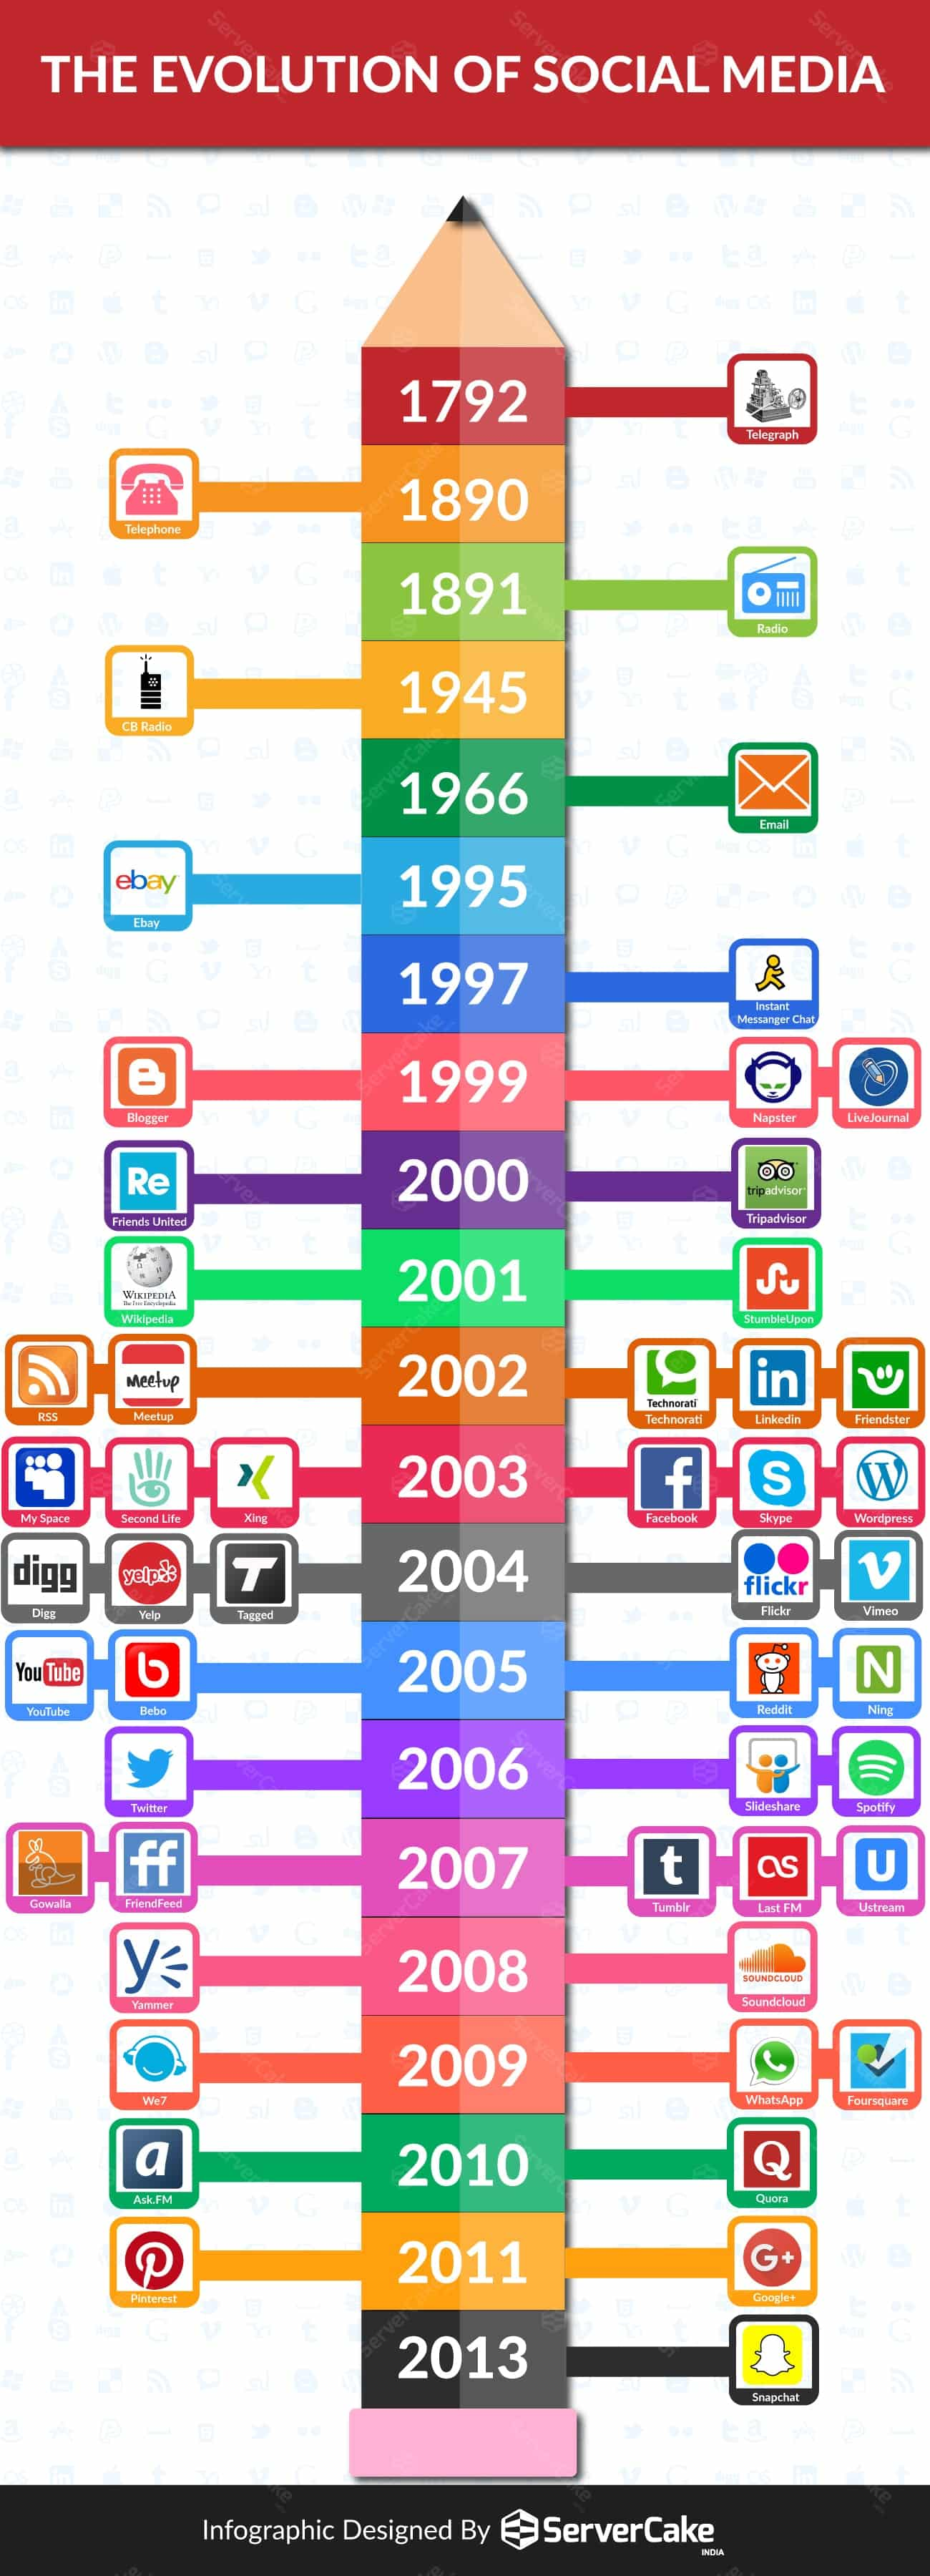 Evolution-of-Social-Media.jpg